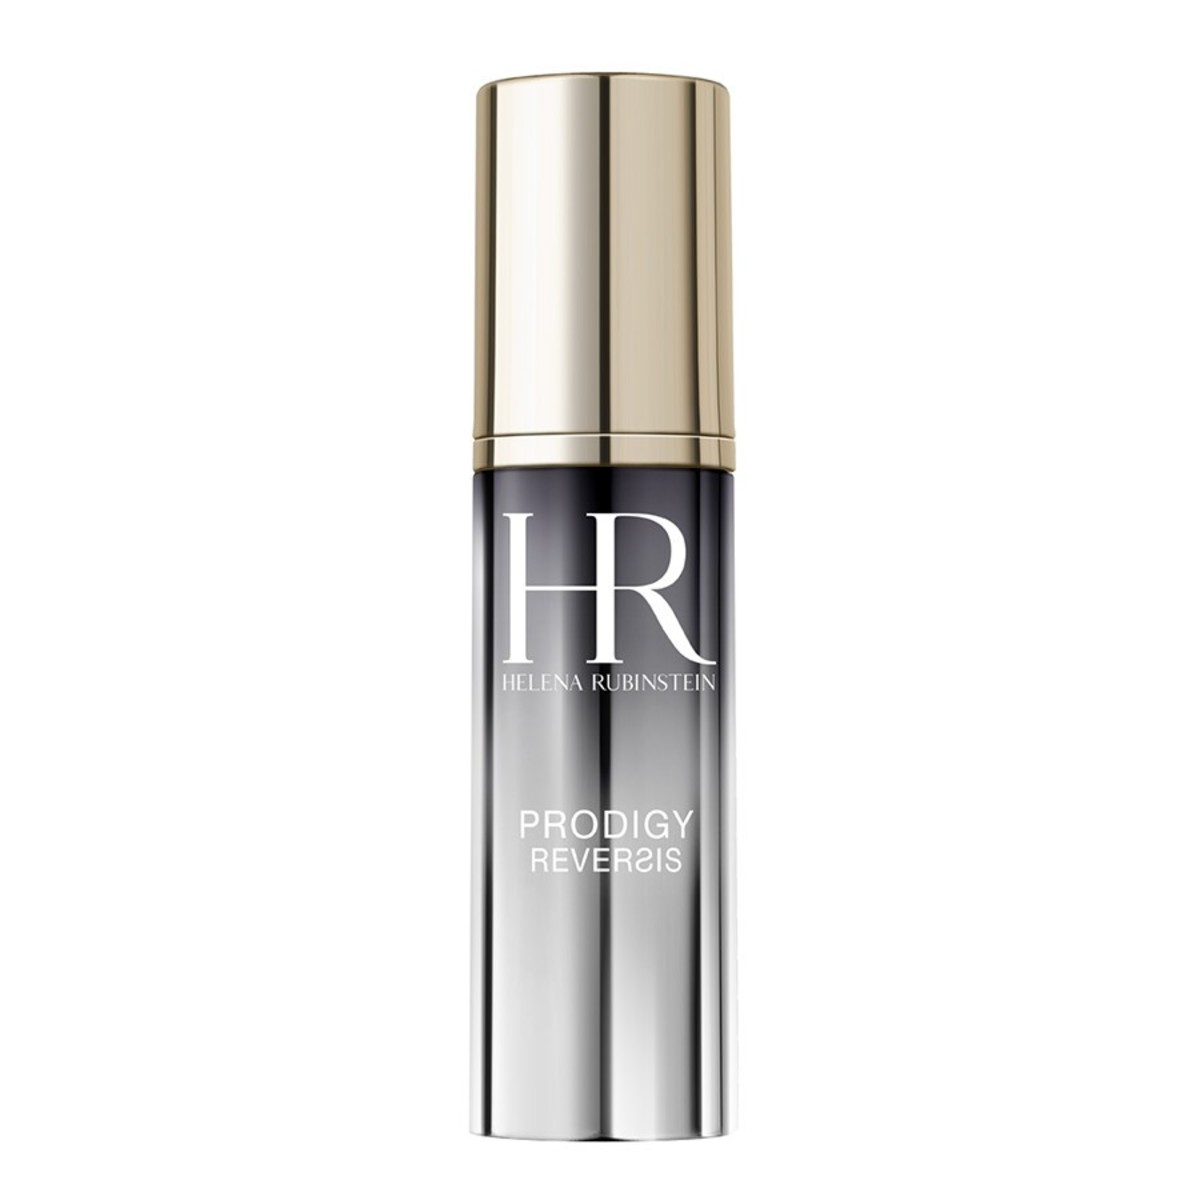 Prodigy Reversis Eye Surconcentrate Eye Serum 15ml [Parallel Import]